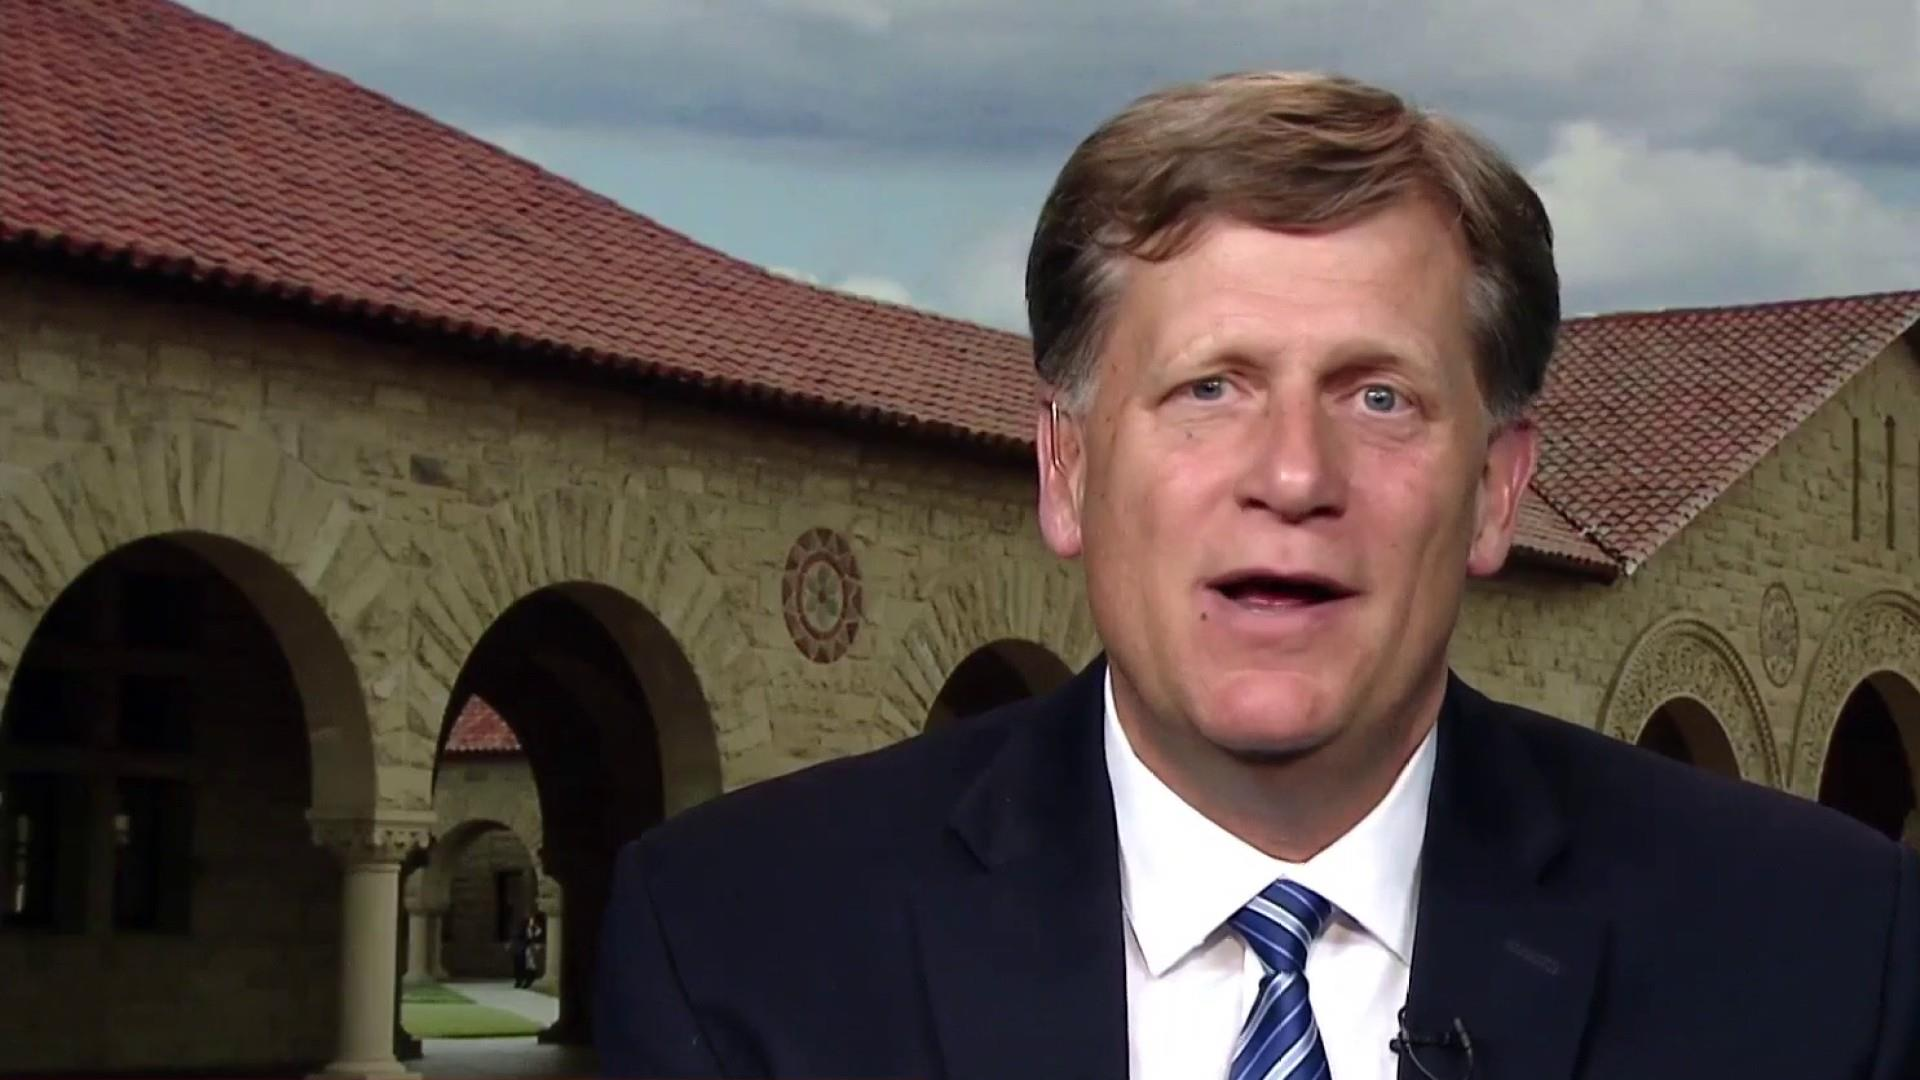 Full McFaul: Putin has weakened us ... and he's not the only one who can do it